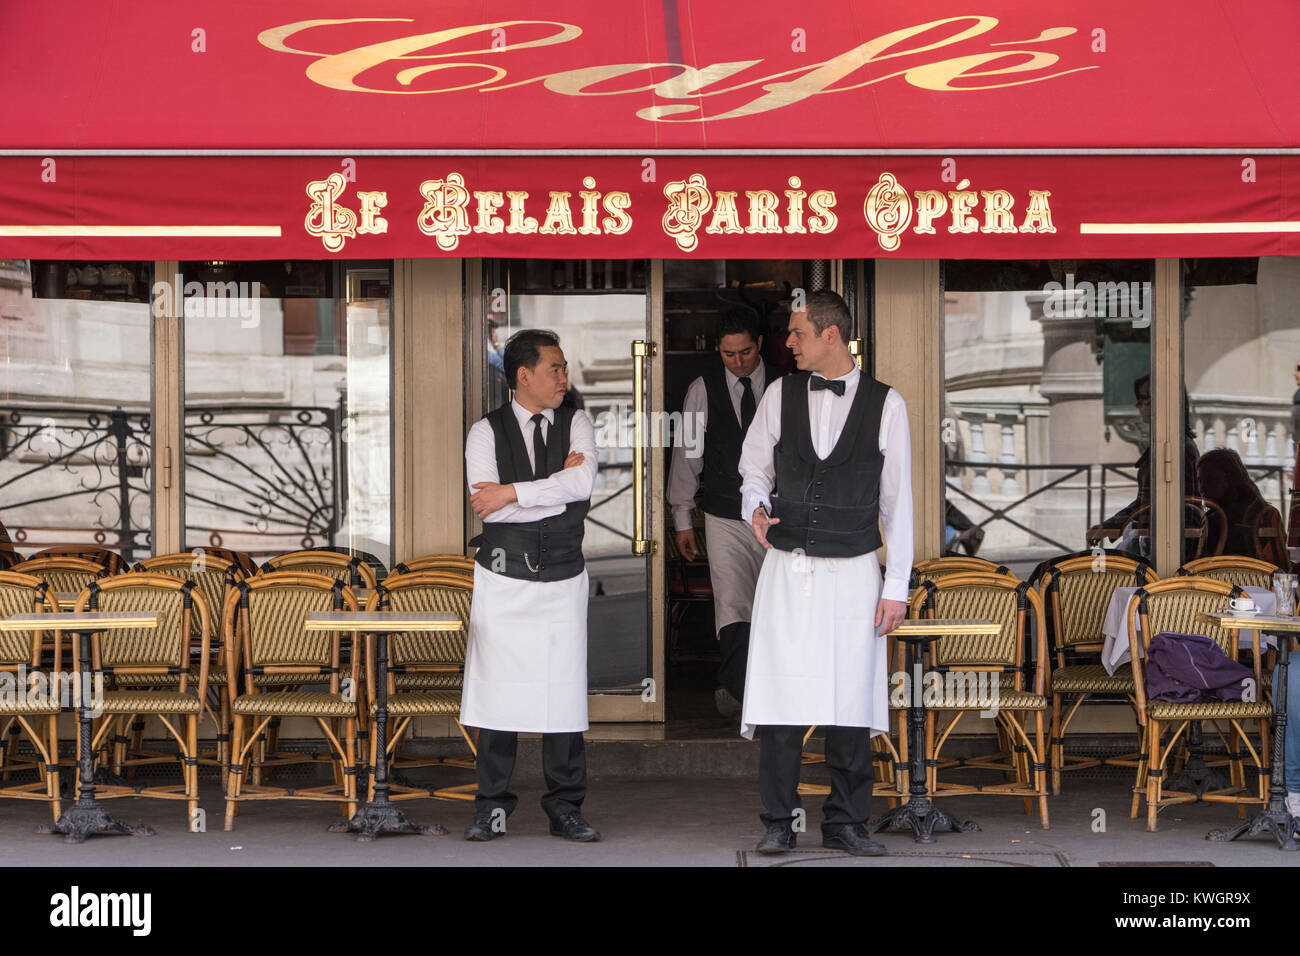 France, Paris, Facade of restaurant cafe with waiters at the ready - Stock Image